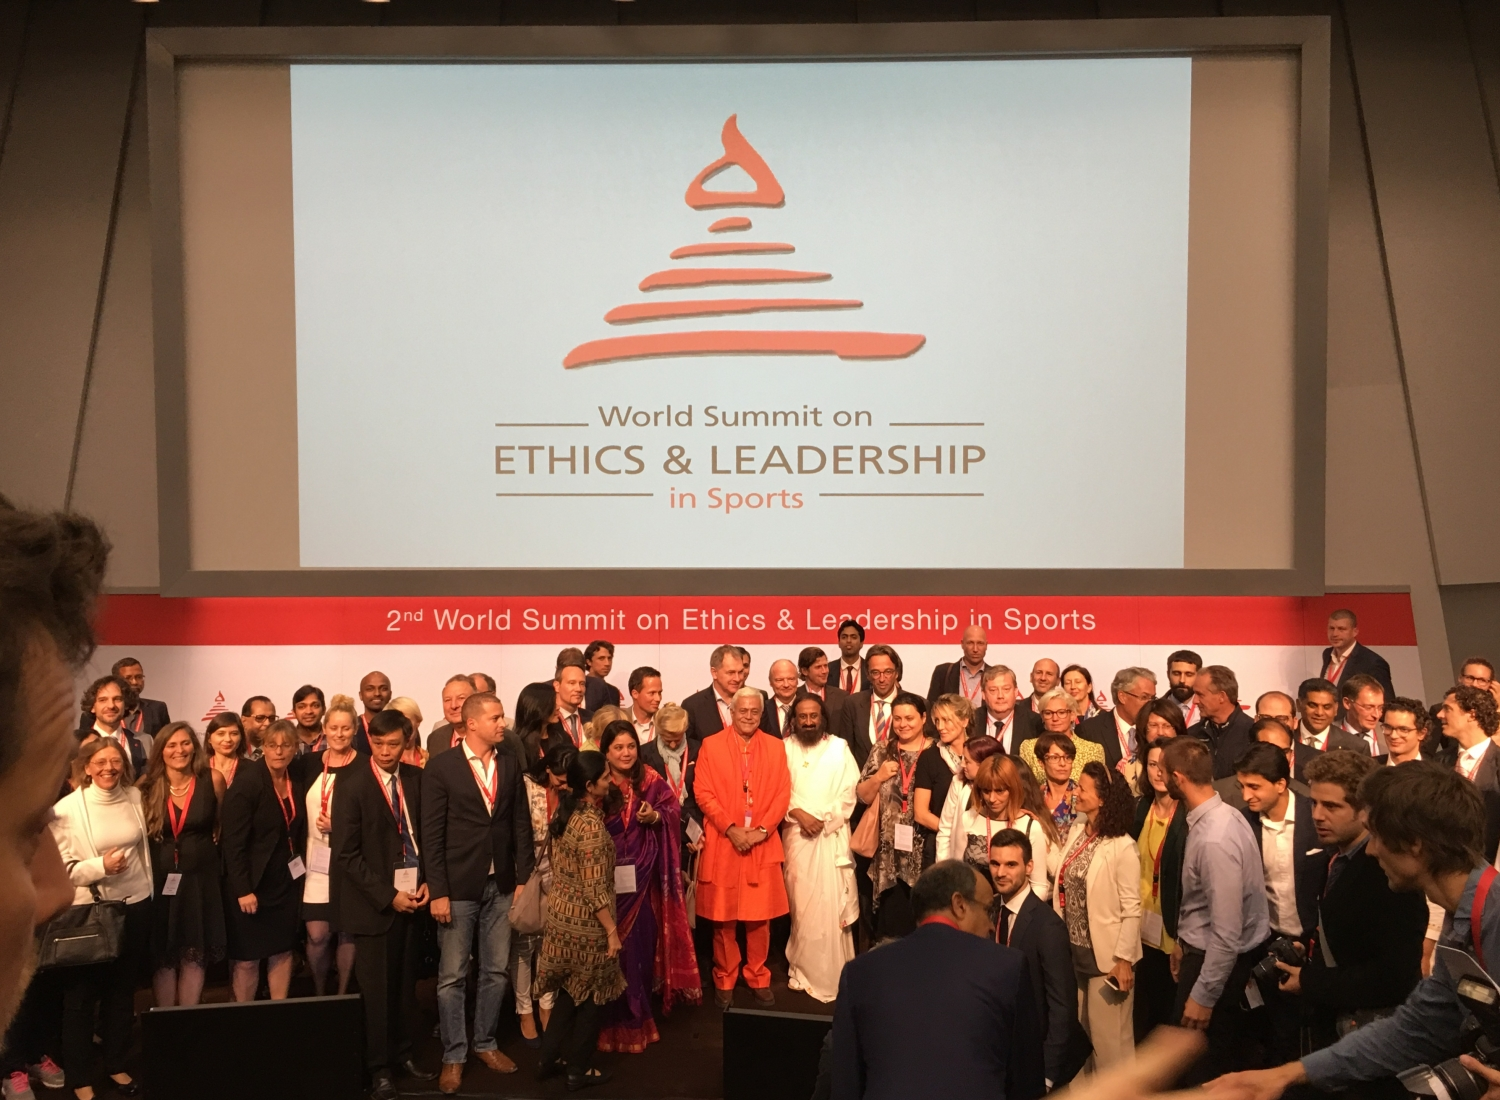 2nd World Summit on Ethics & Leadership in Sports - Zurich, Suiza - 2016, septiembre